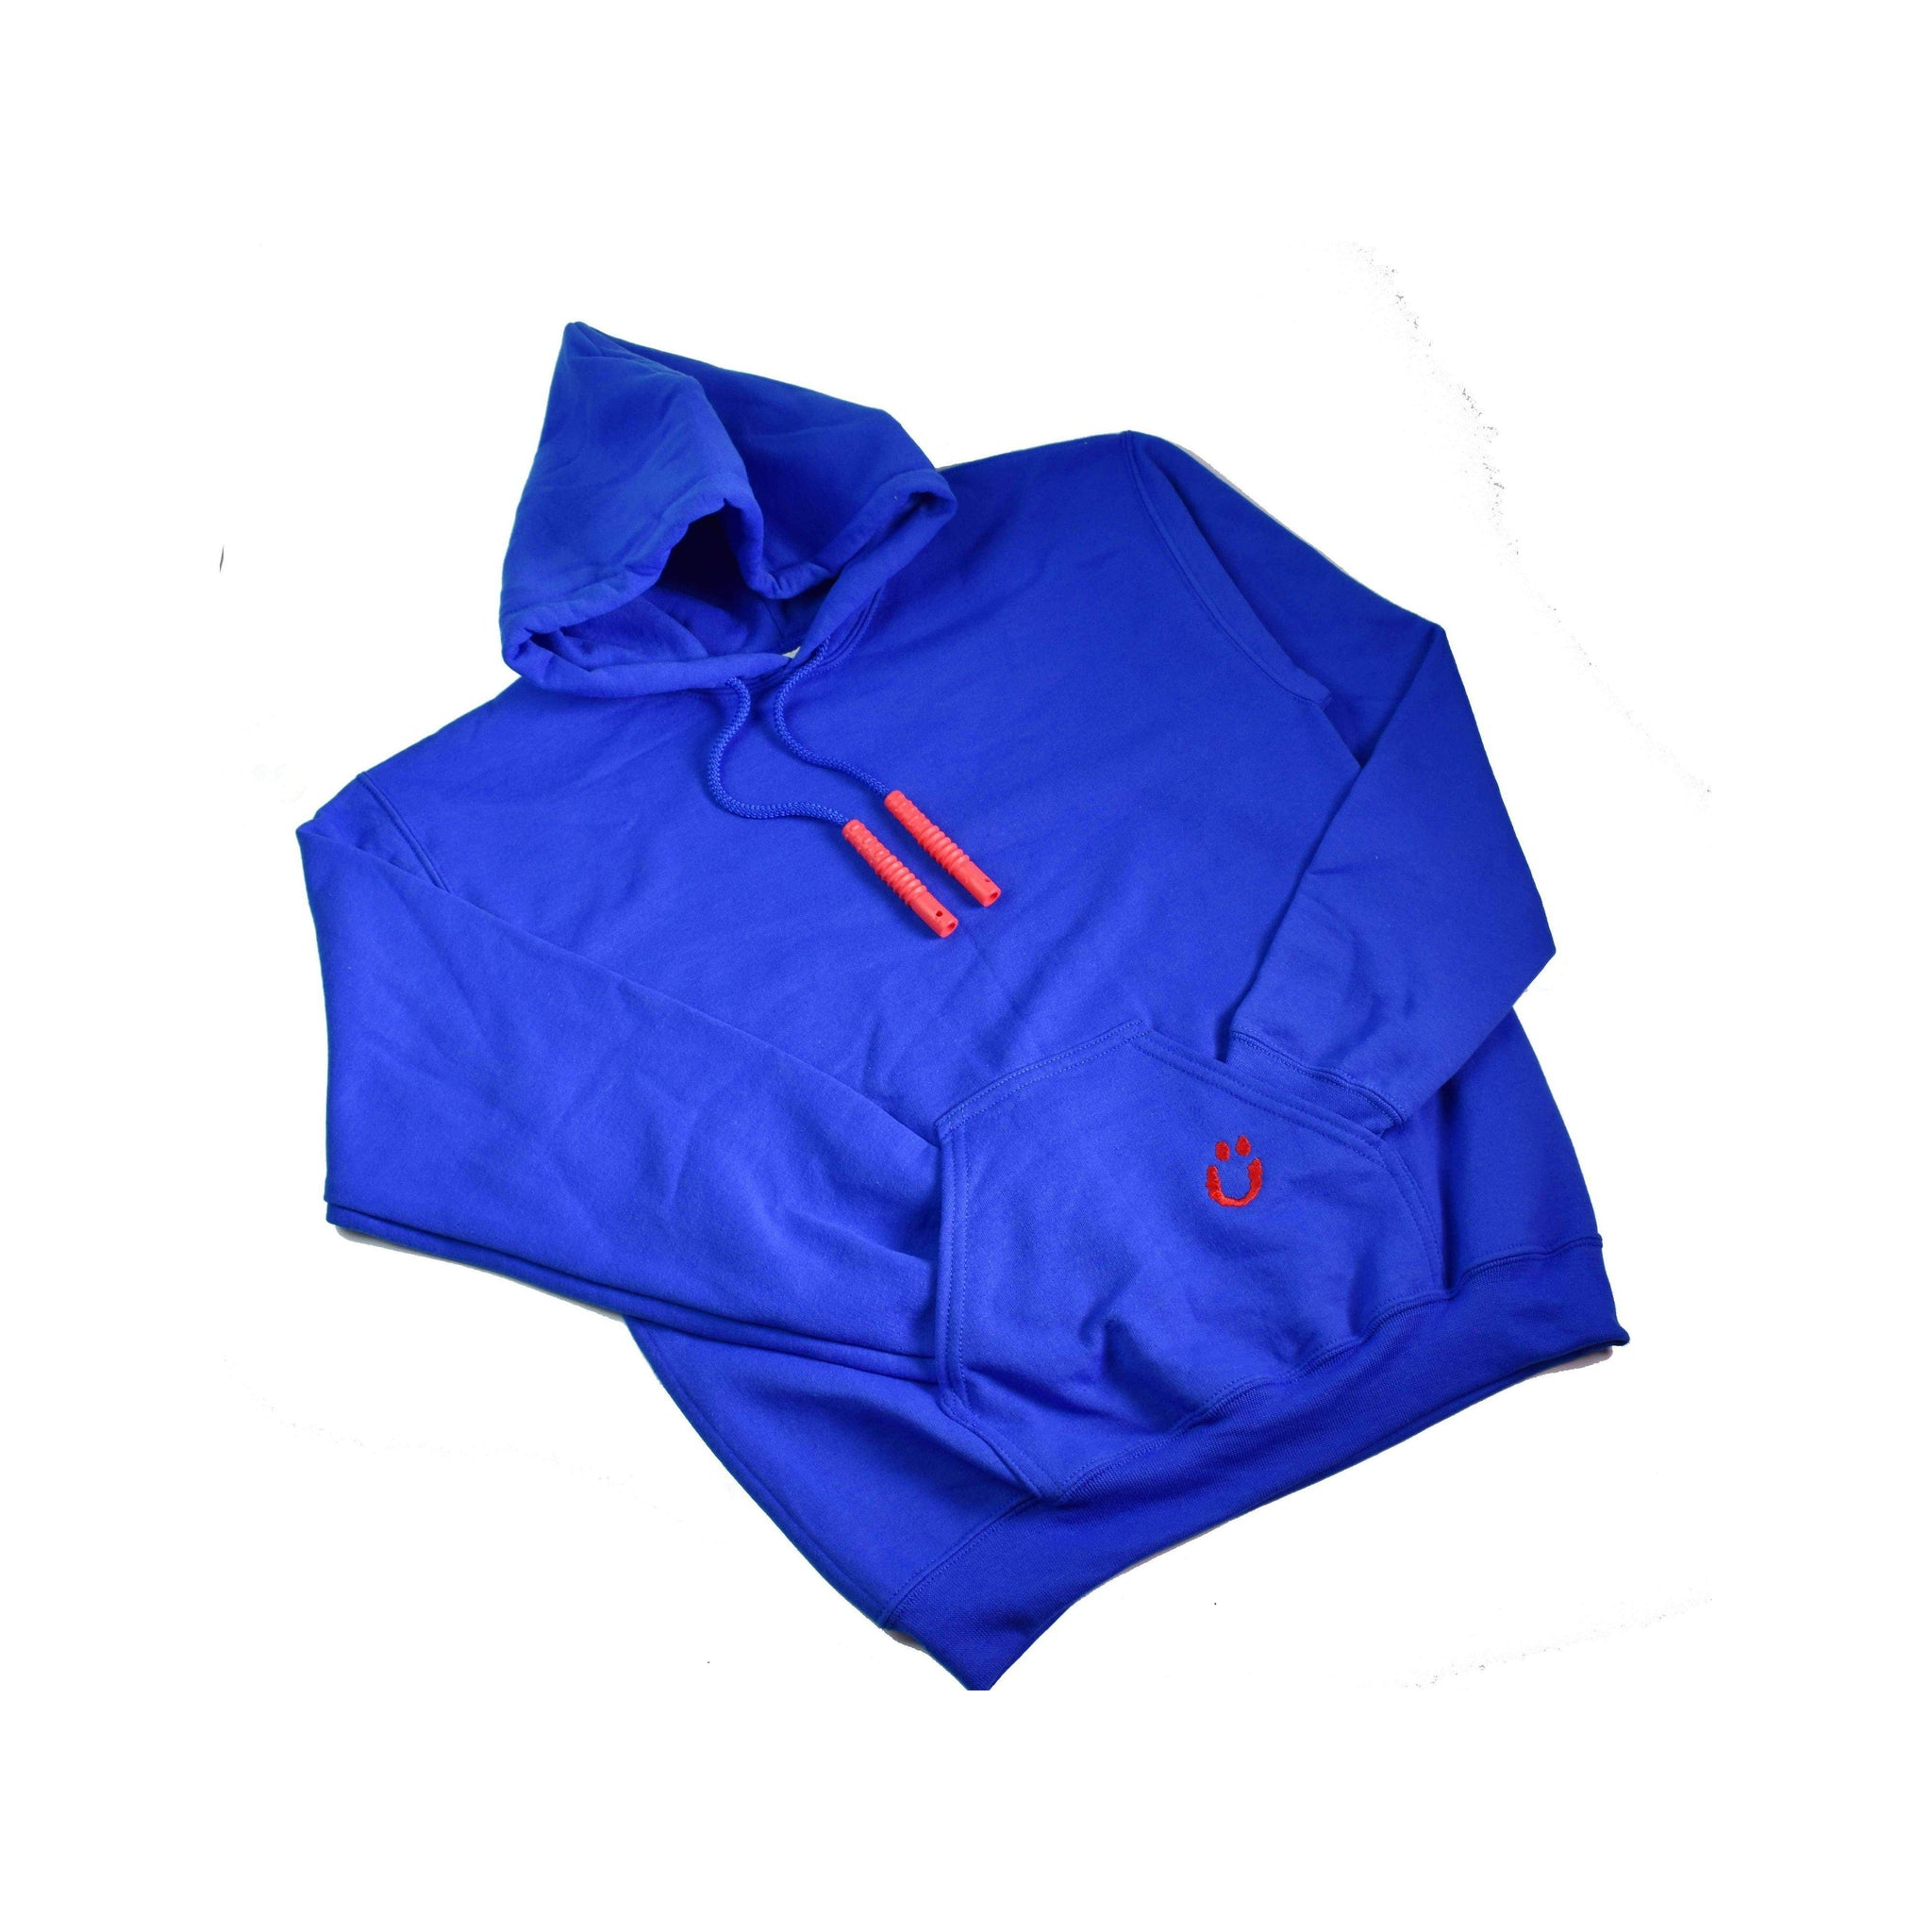 ChuBuddy Hood Zilla Royal Blue Adult S, M, L, XL with Red Cord Zillas